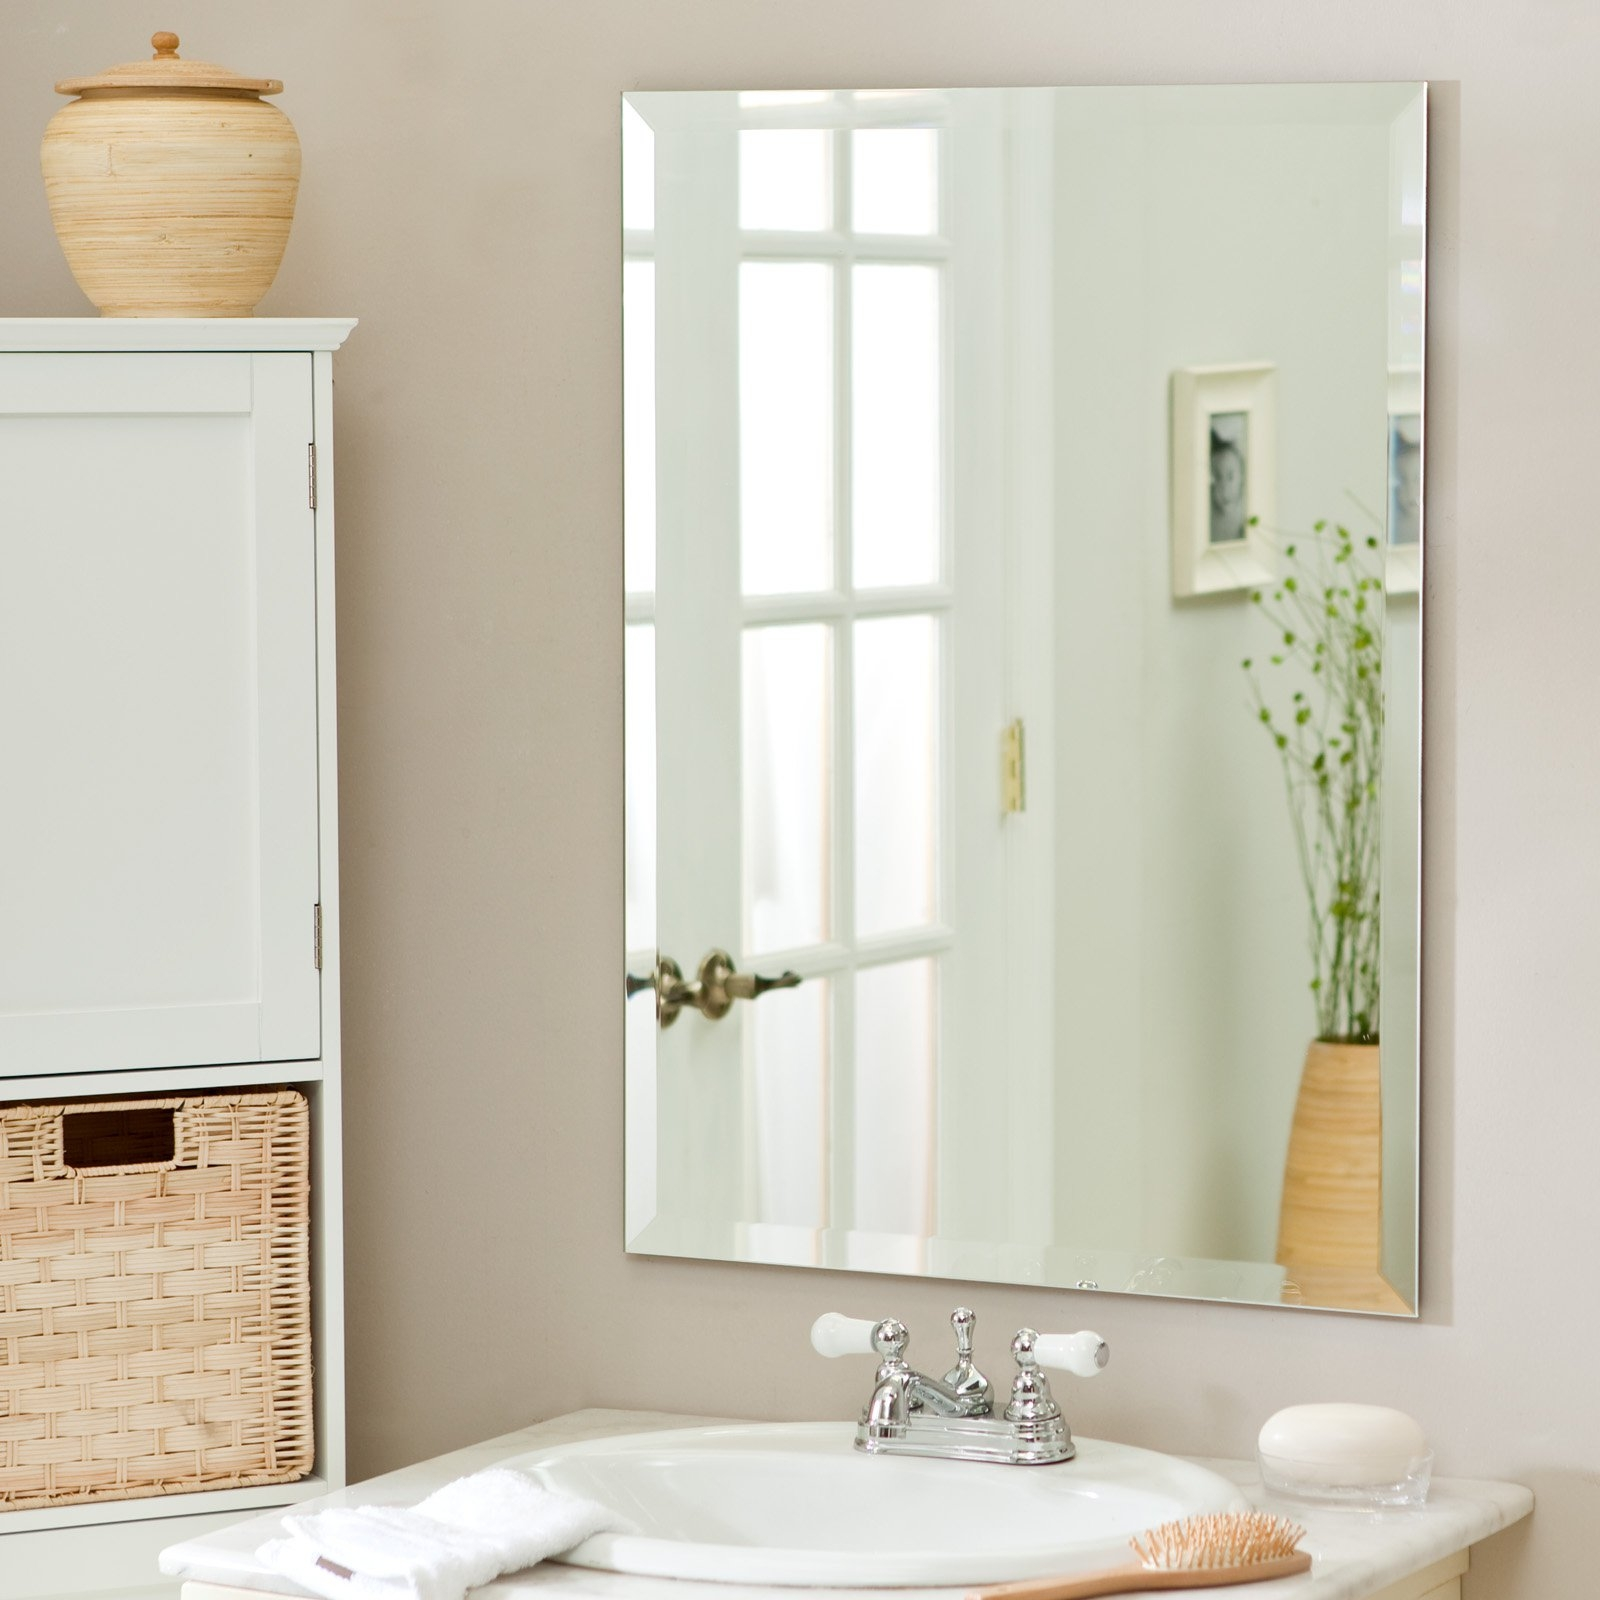 Uttermost Frameless Oval Beveled Vanity Mirror Mirrors At Hayneedle For Wall Mirror No Frame (Image 12 of 15)